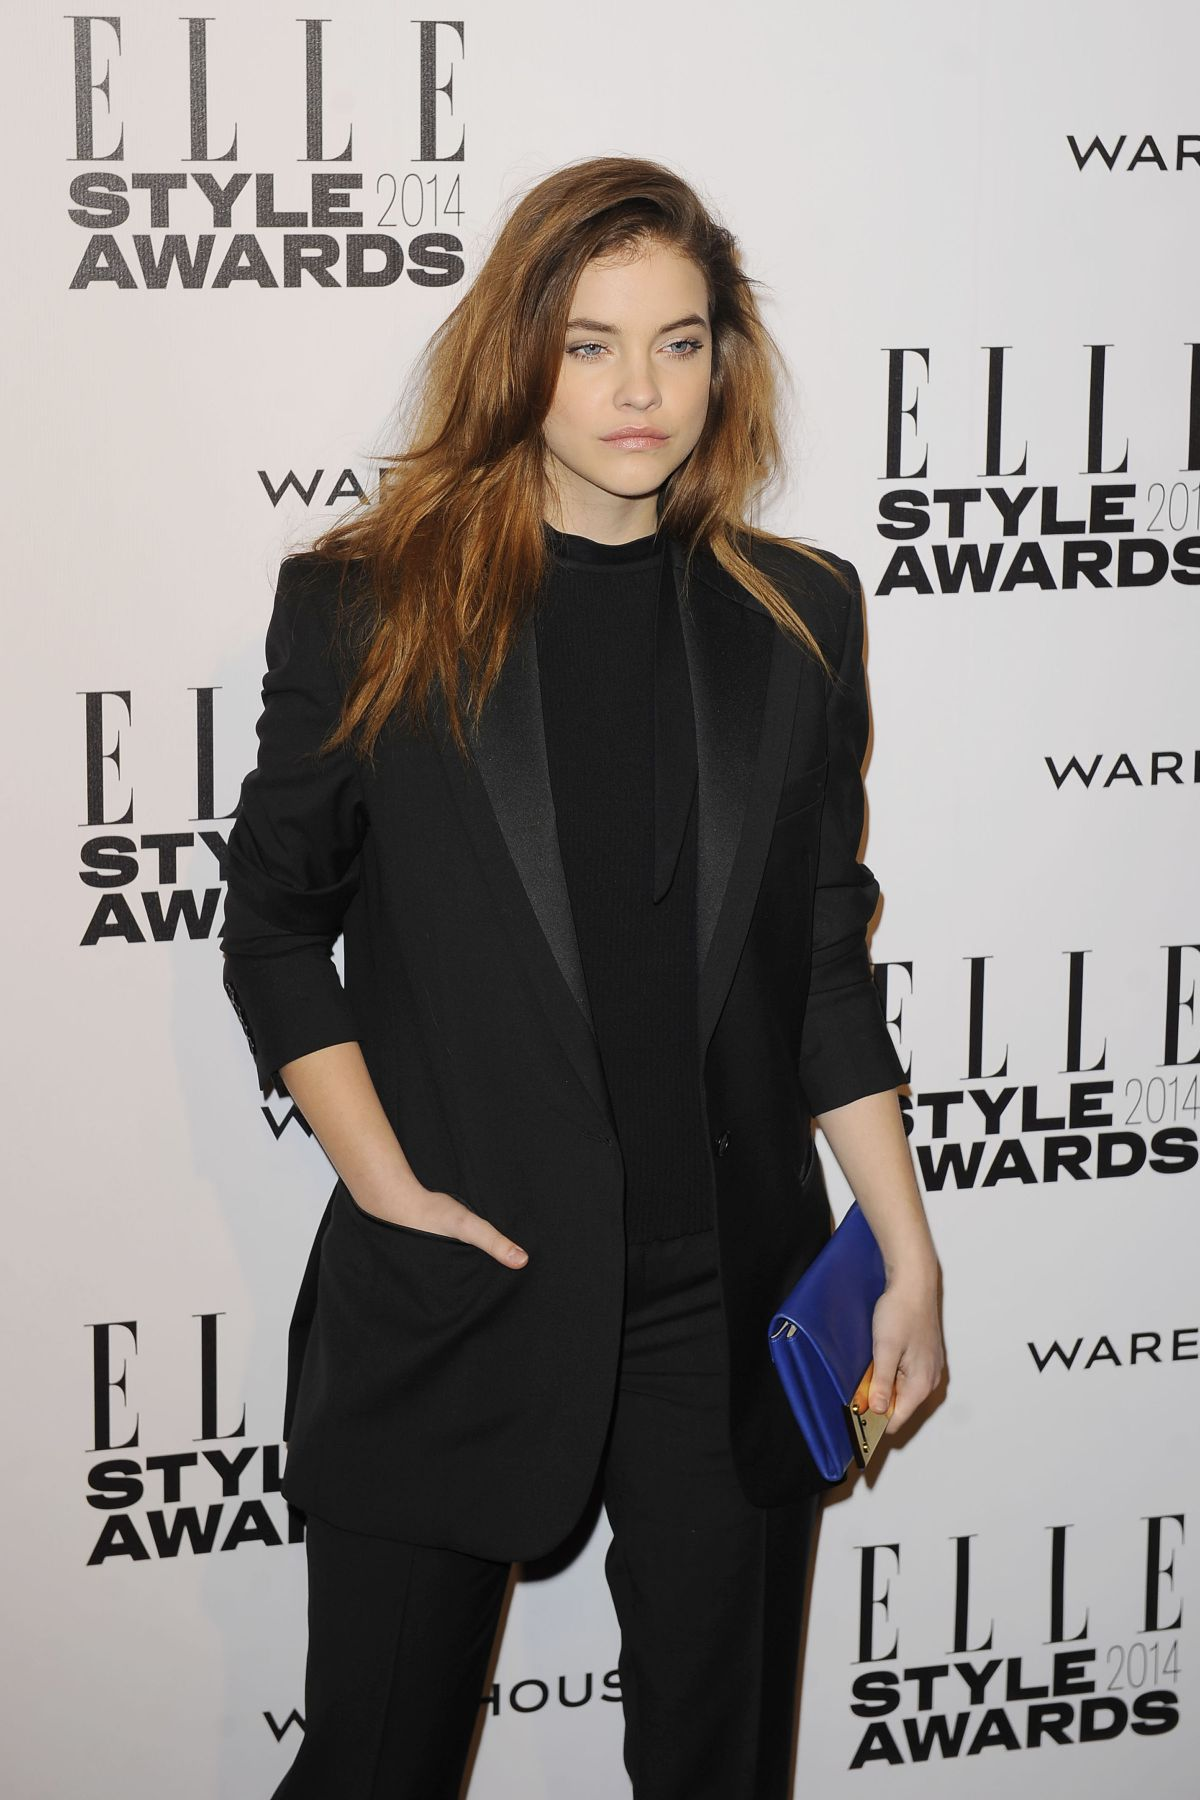 BARBARA PALVIN at 2014 Elle Style Awards in London